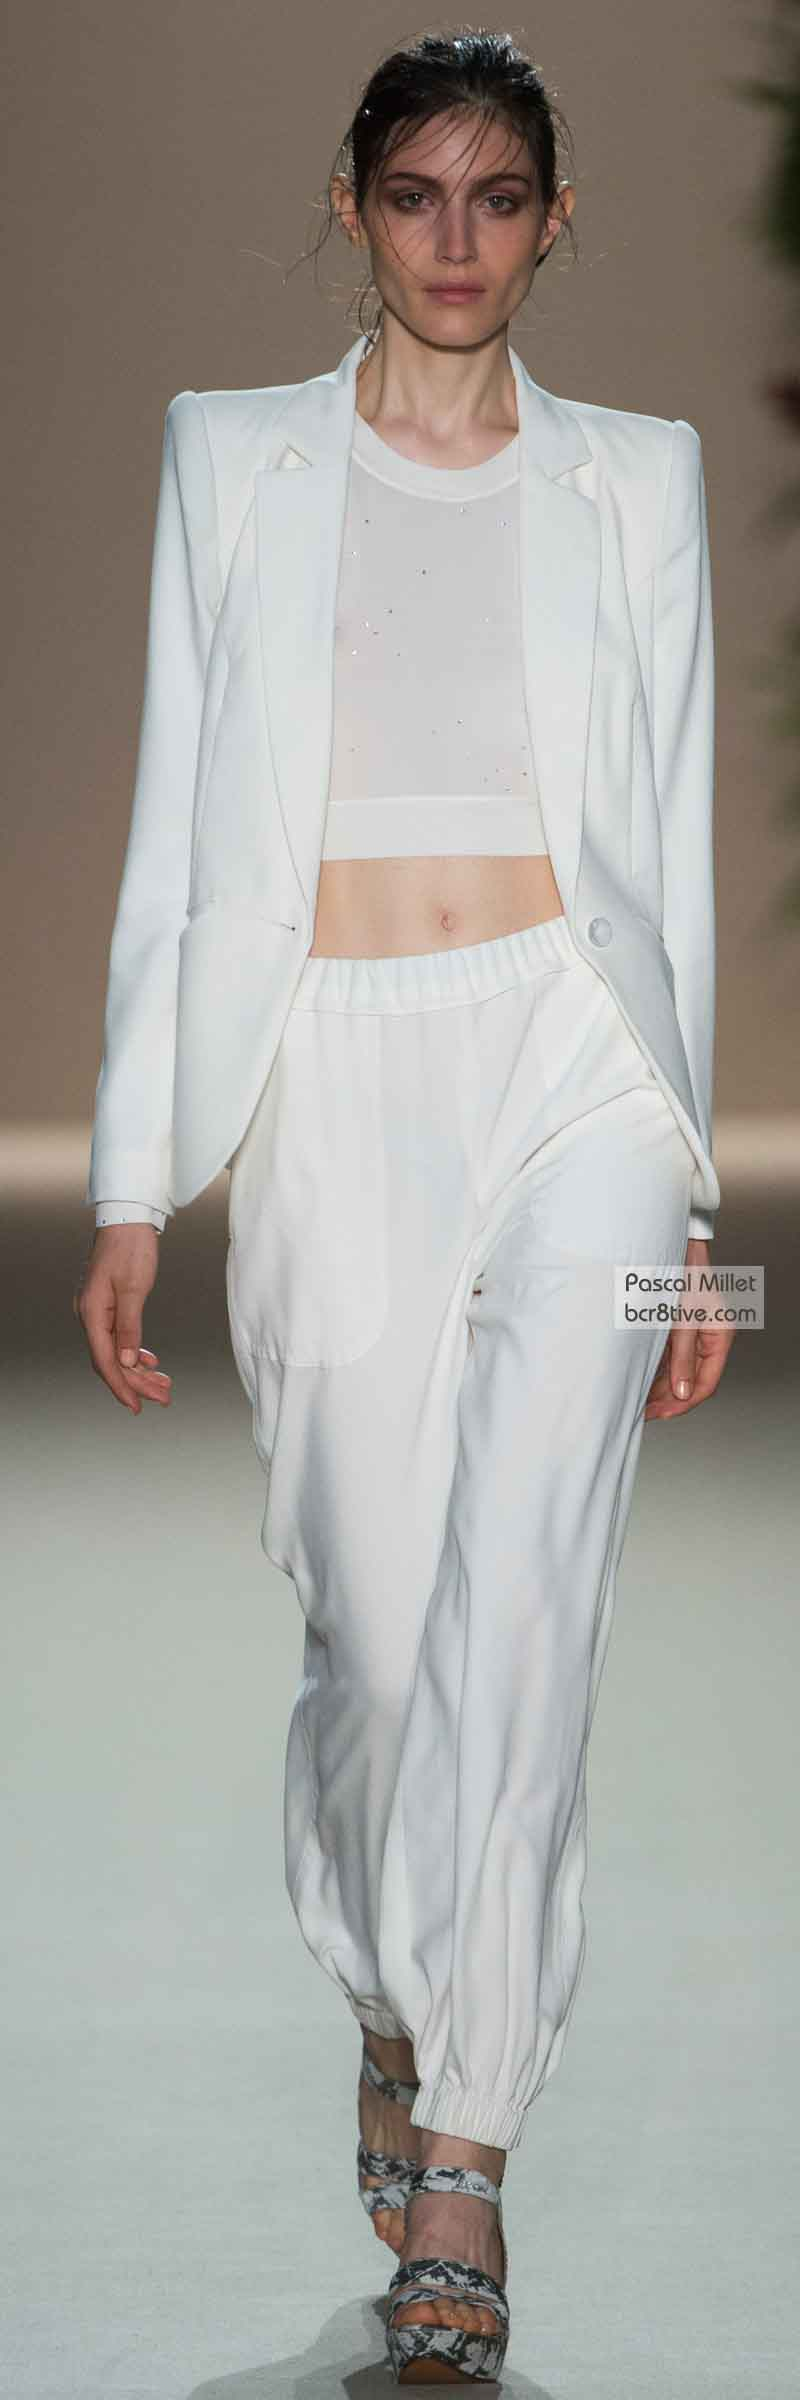 Pascal Millet Spring Summer 2014